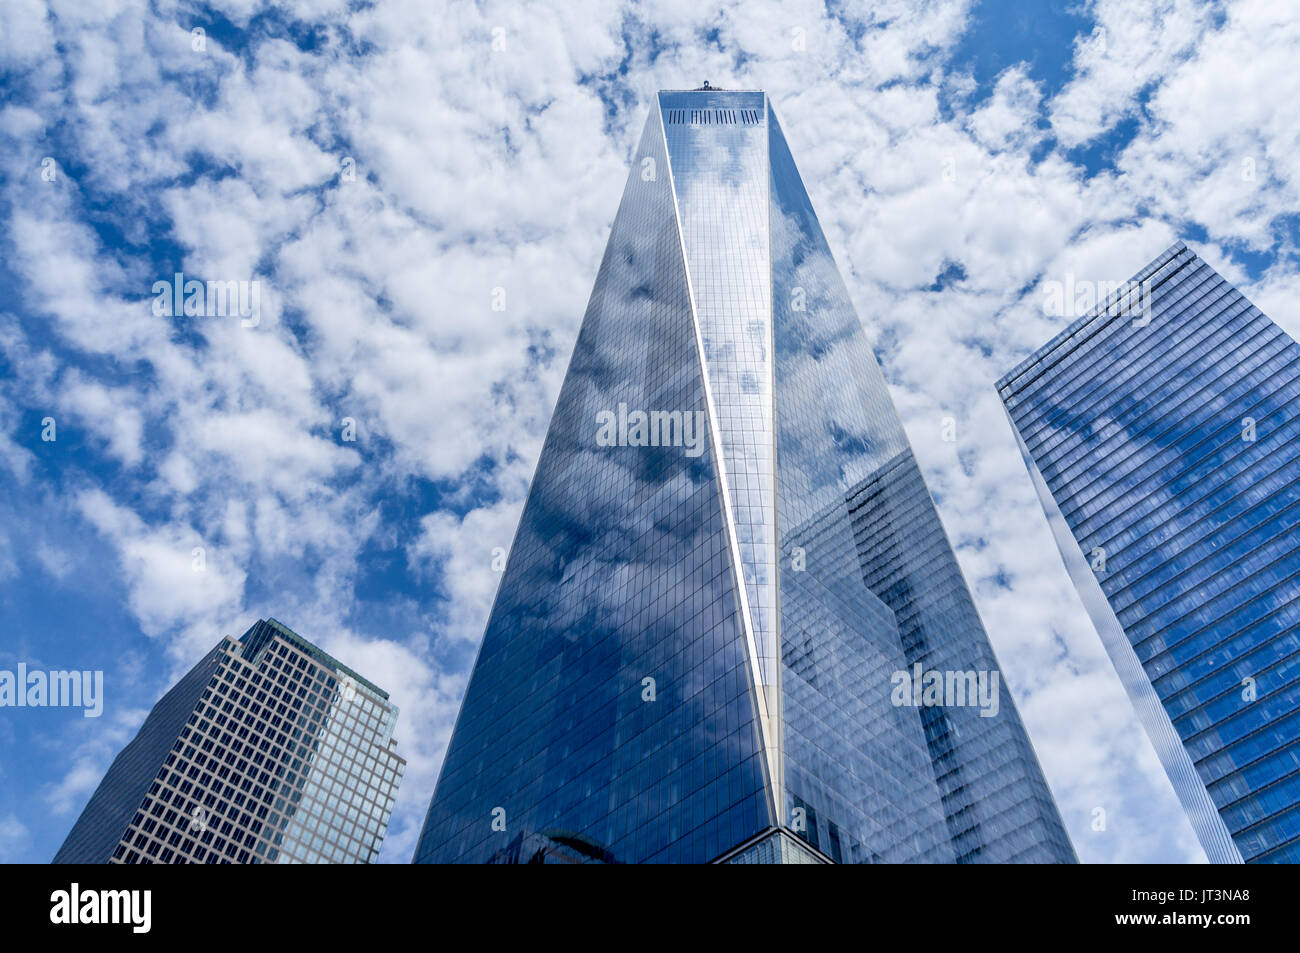 USA, New York, One World Trade Center (Freedom Tower). Located on Manhattan, it's the tallest building in the United States. - Stock Image